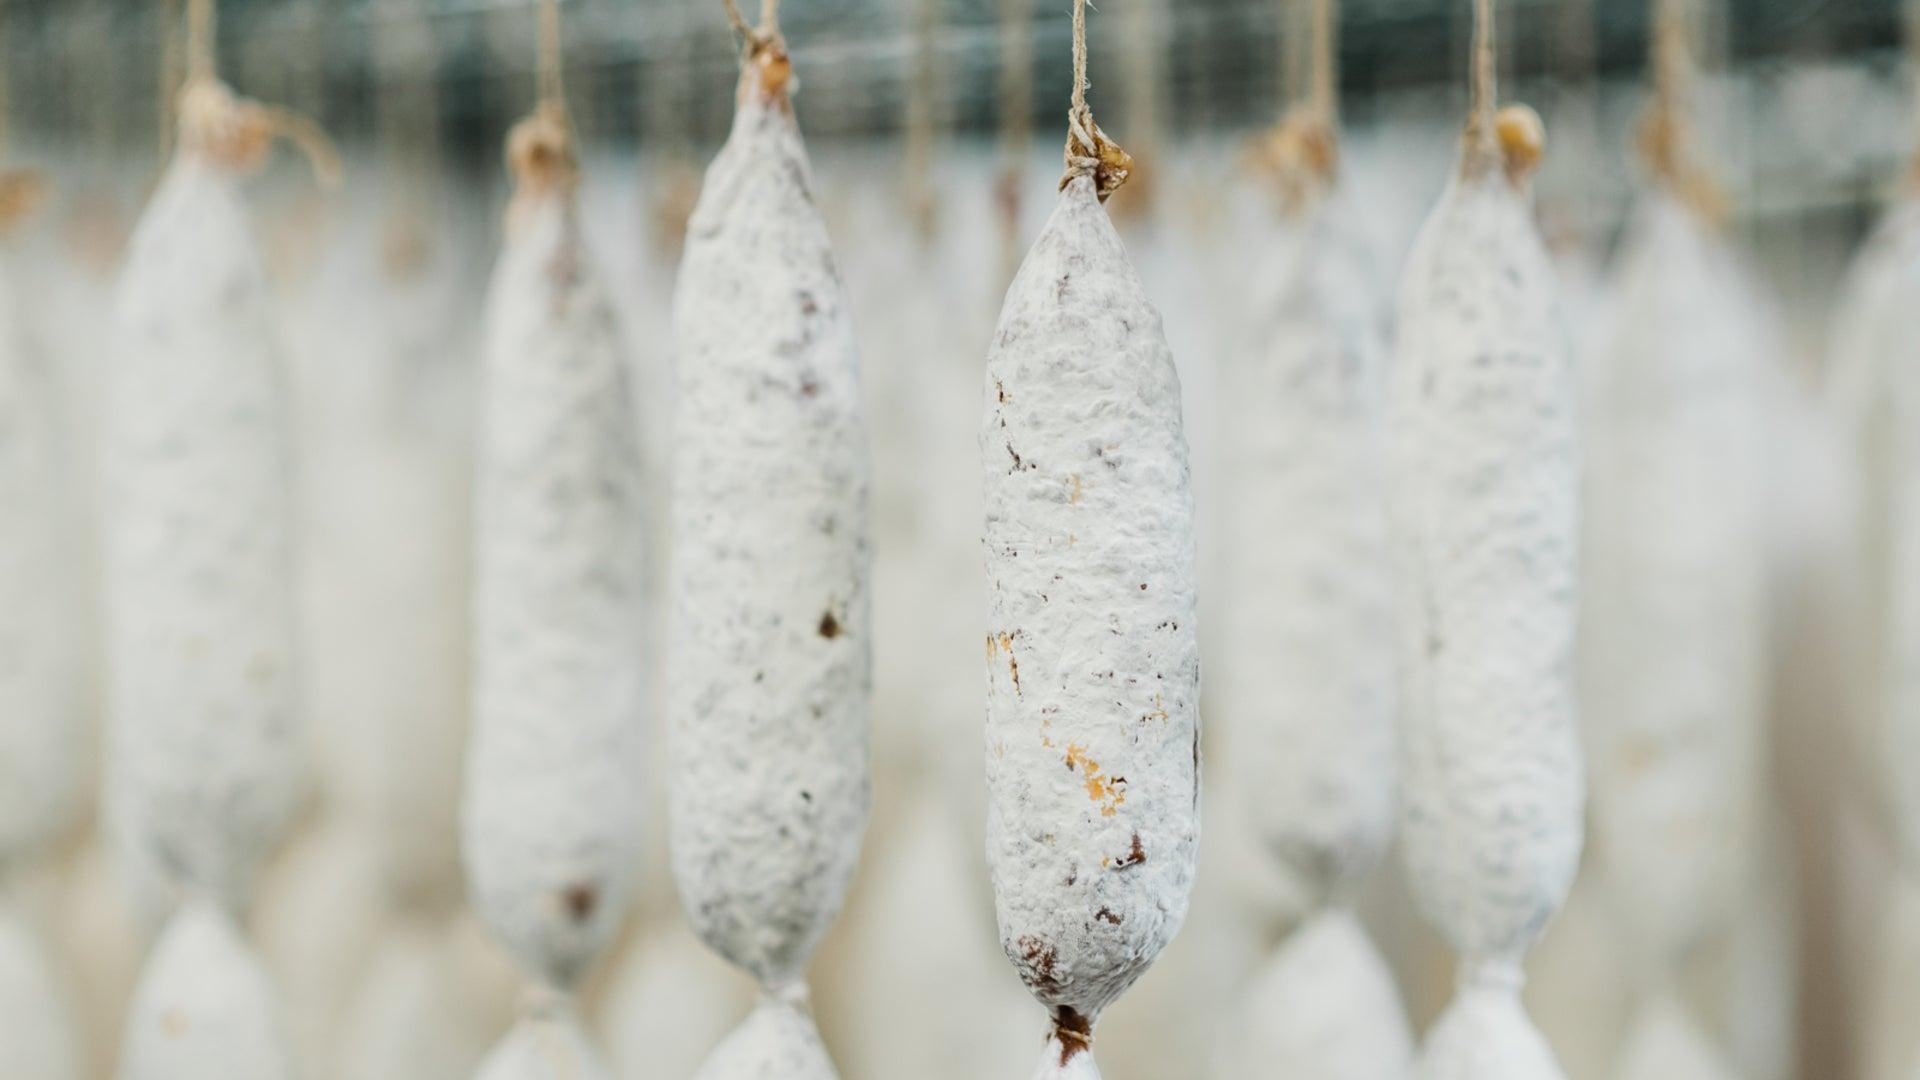 A close up picture of salami hanging in the drying room to show the salami's protective white mold.